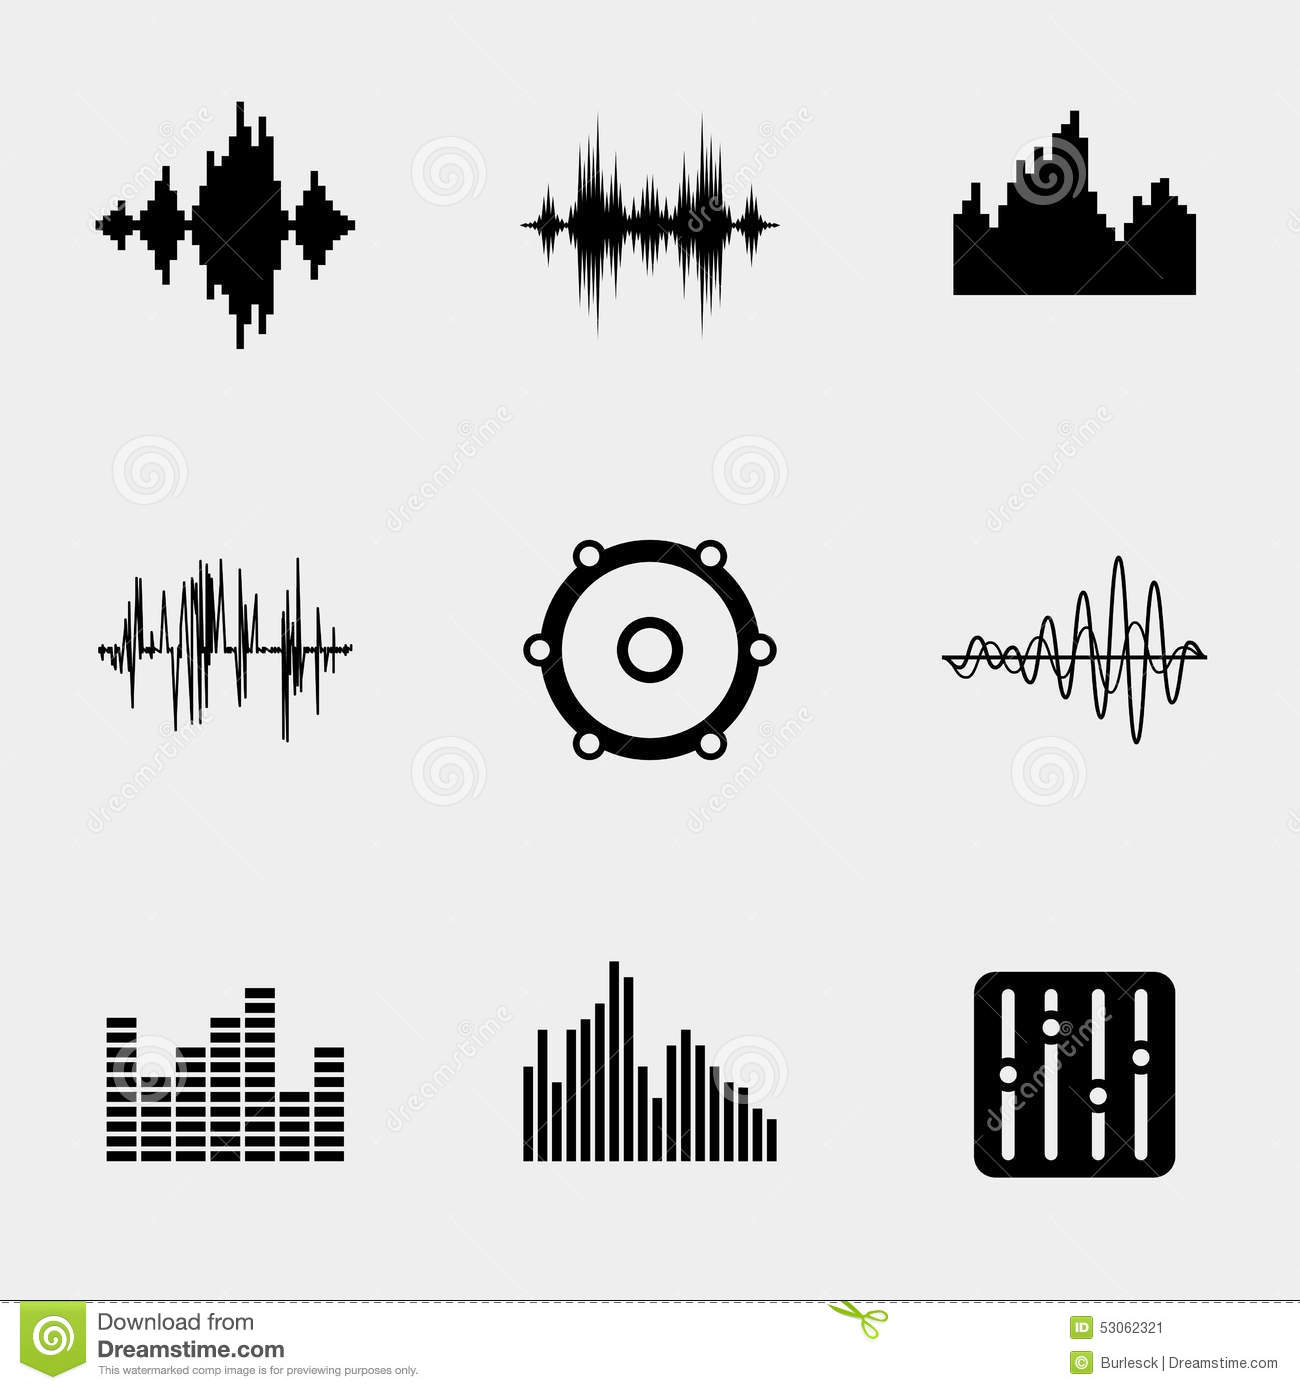 how to get a sound wave image